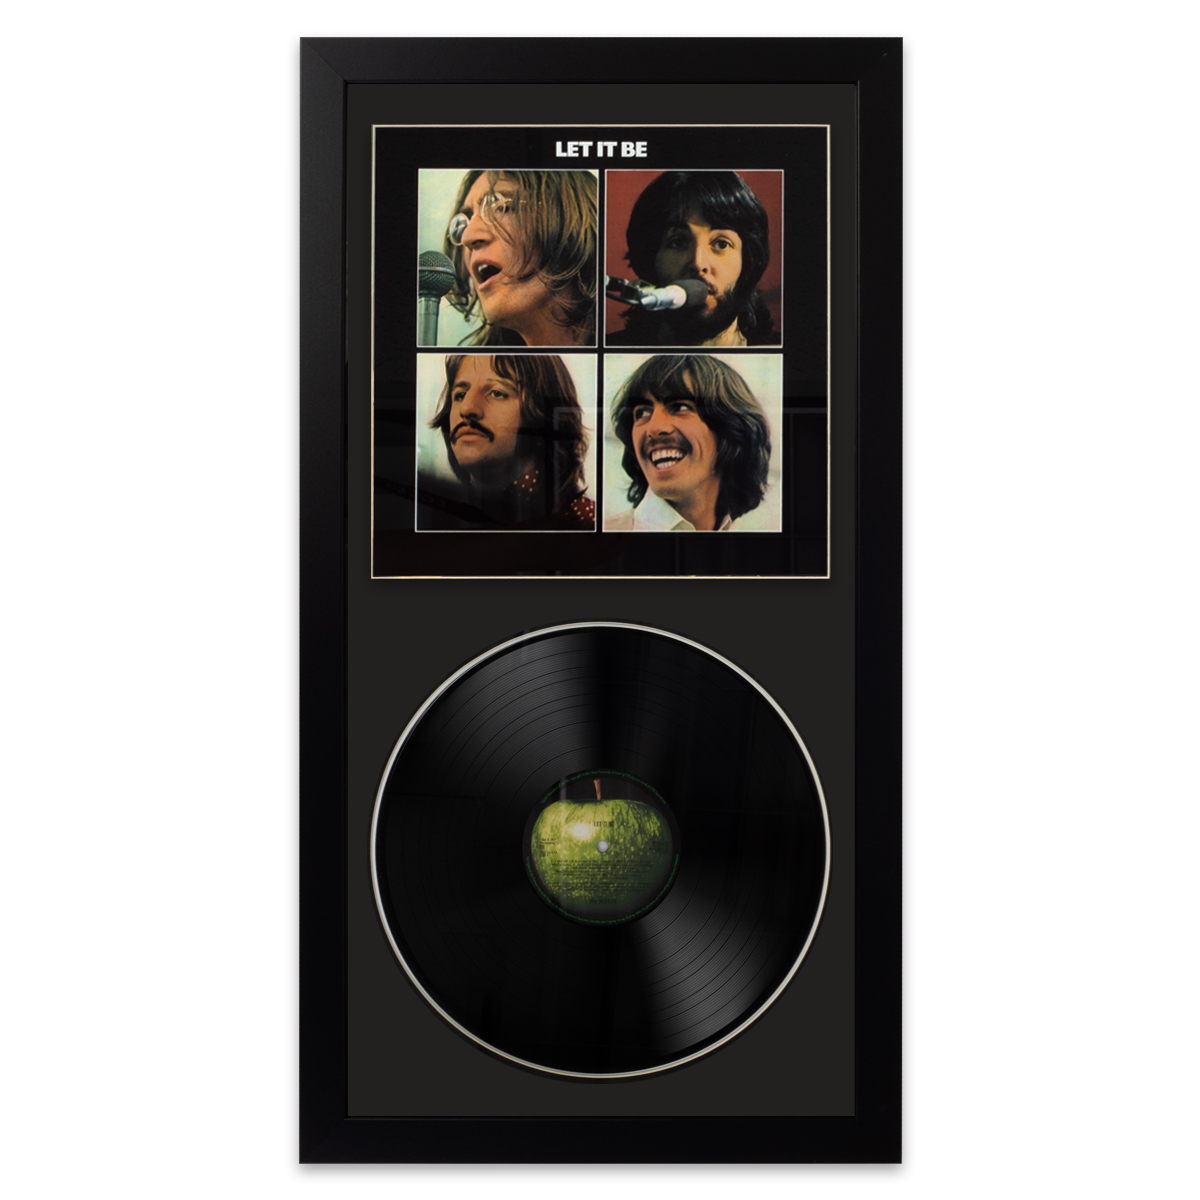 The Beatles Let It Be Wall Album